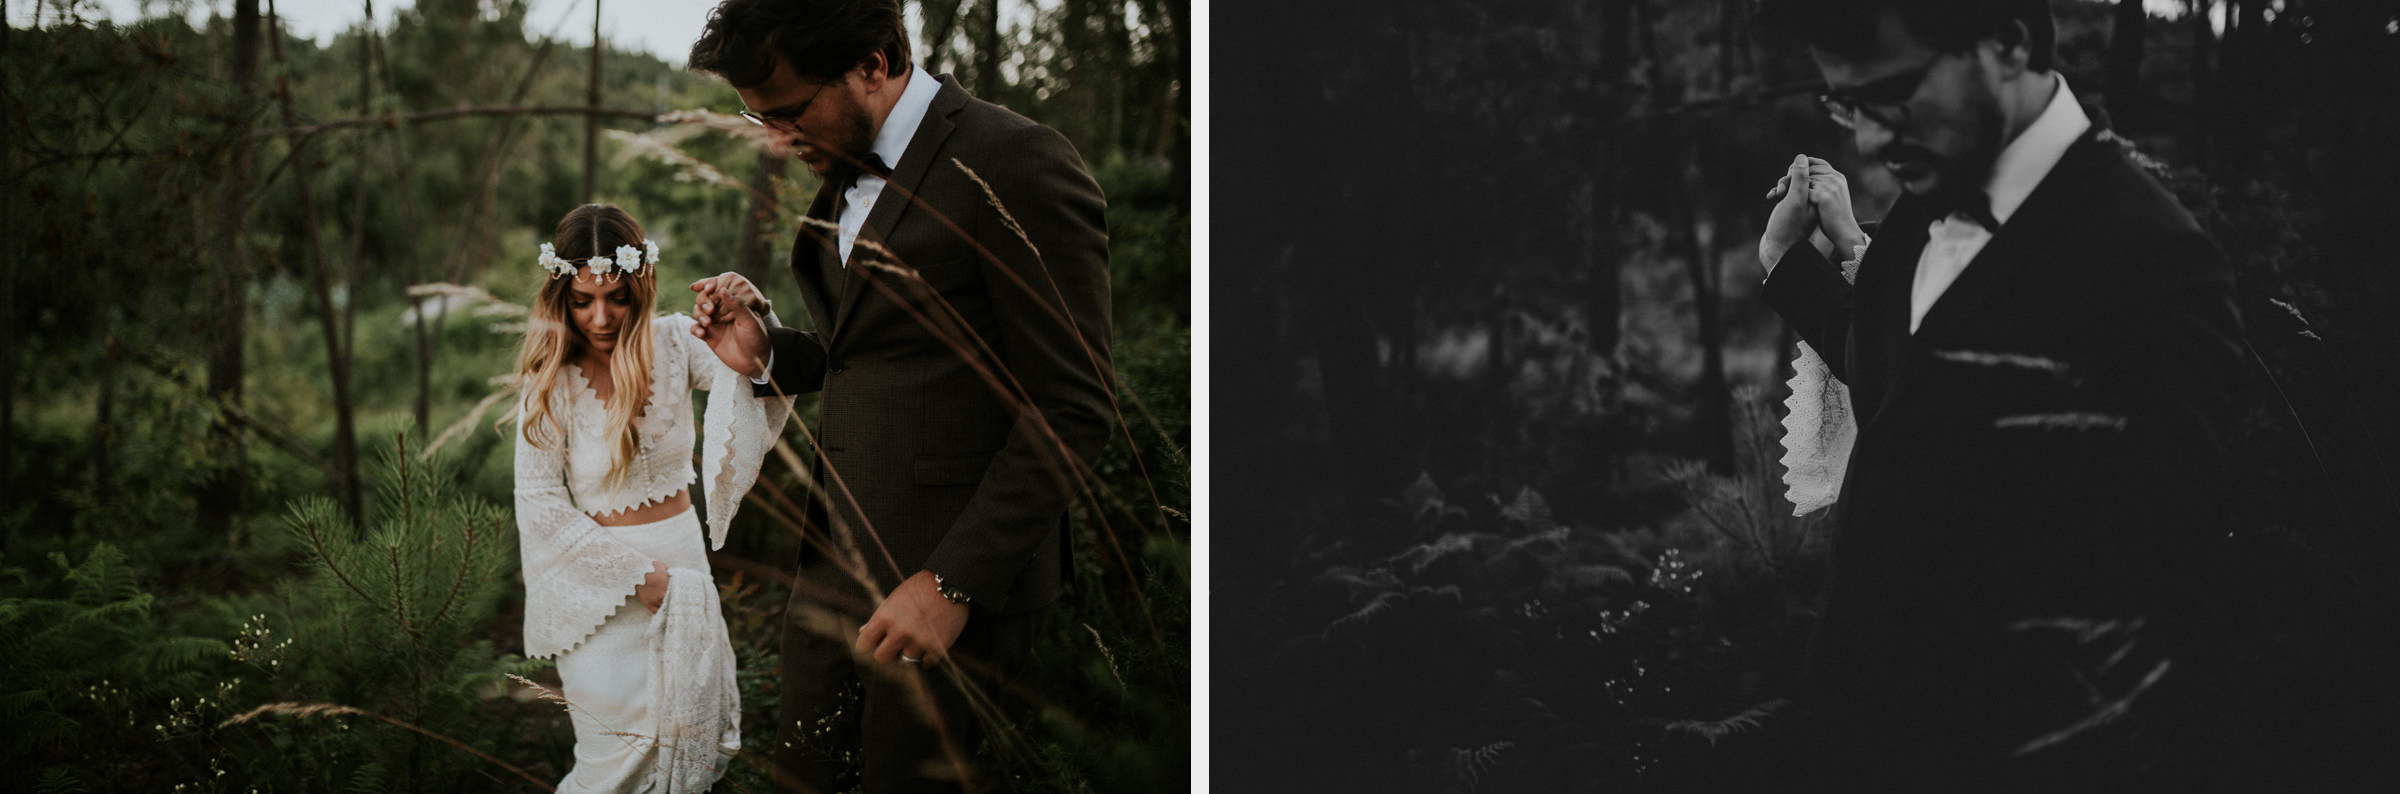 two photo montage of bride and groom session in the woods